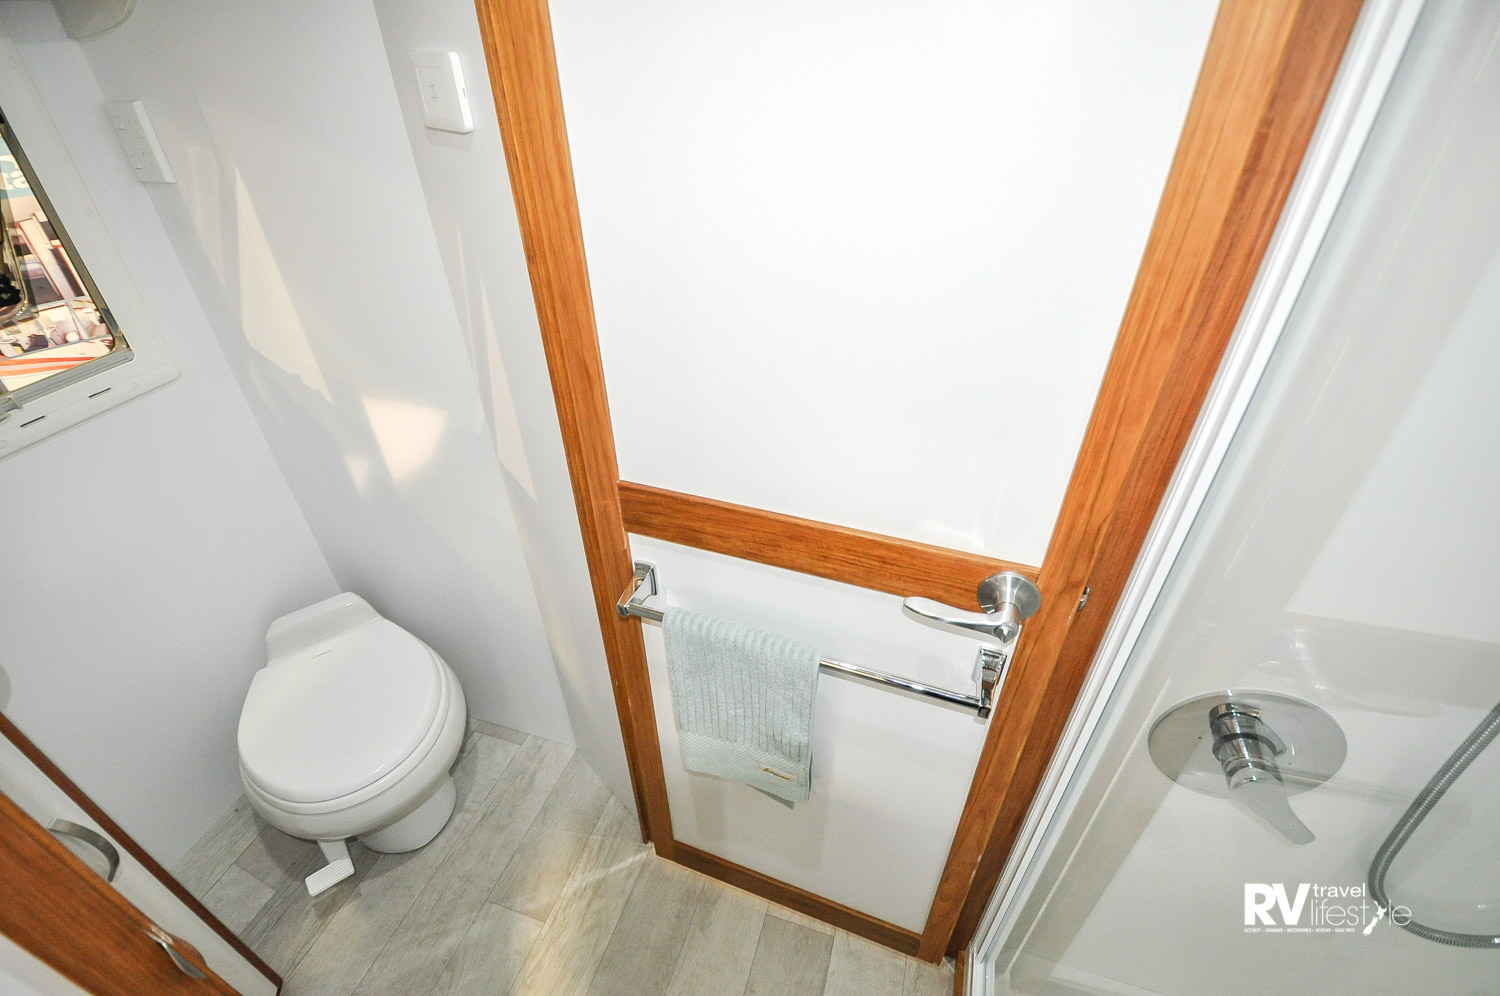 The toilet en suite is opposite the full shower, in this photo the privacy door is shut to the living area, so much room, so light, right and modern in finish